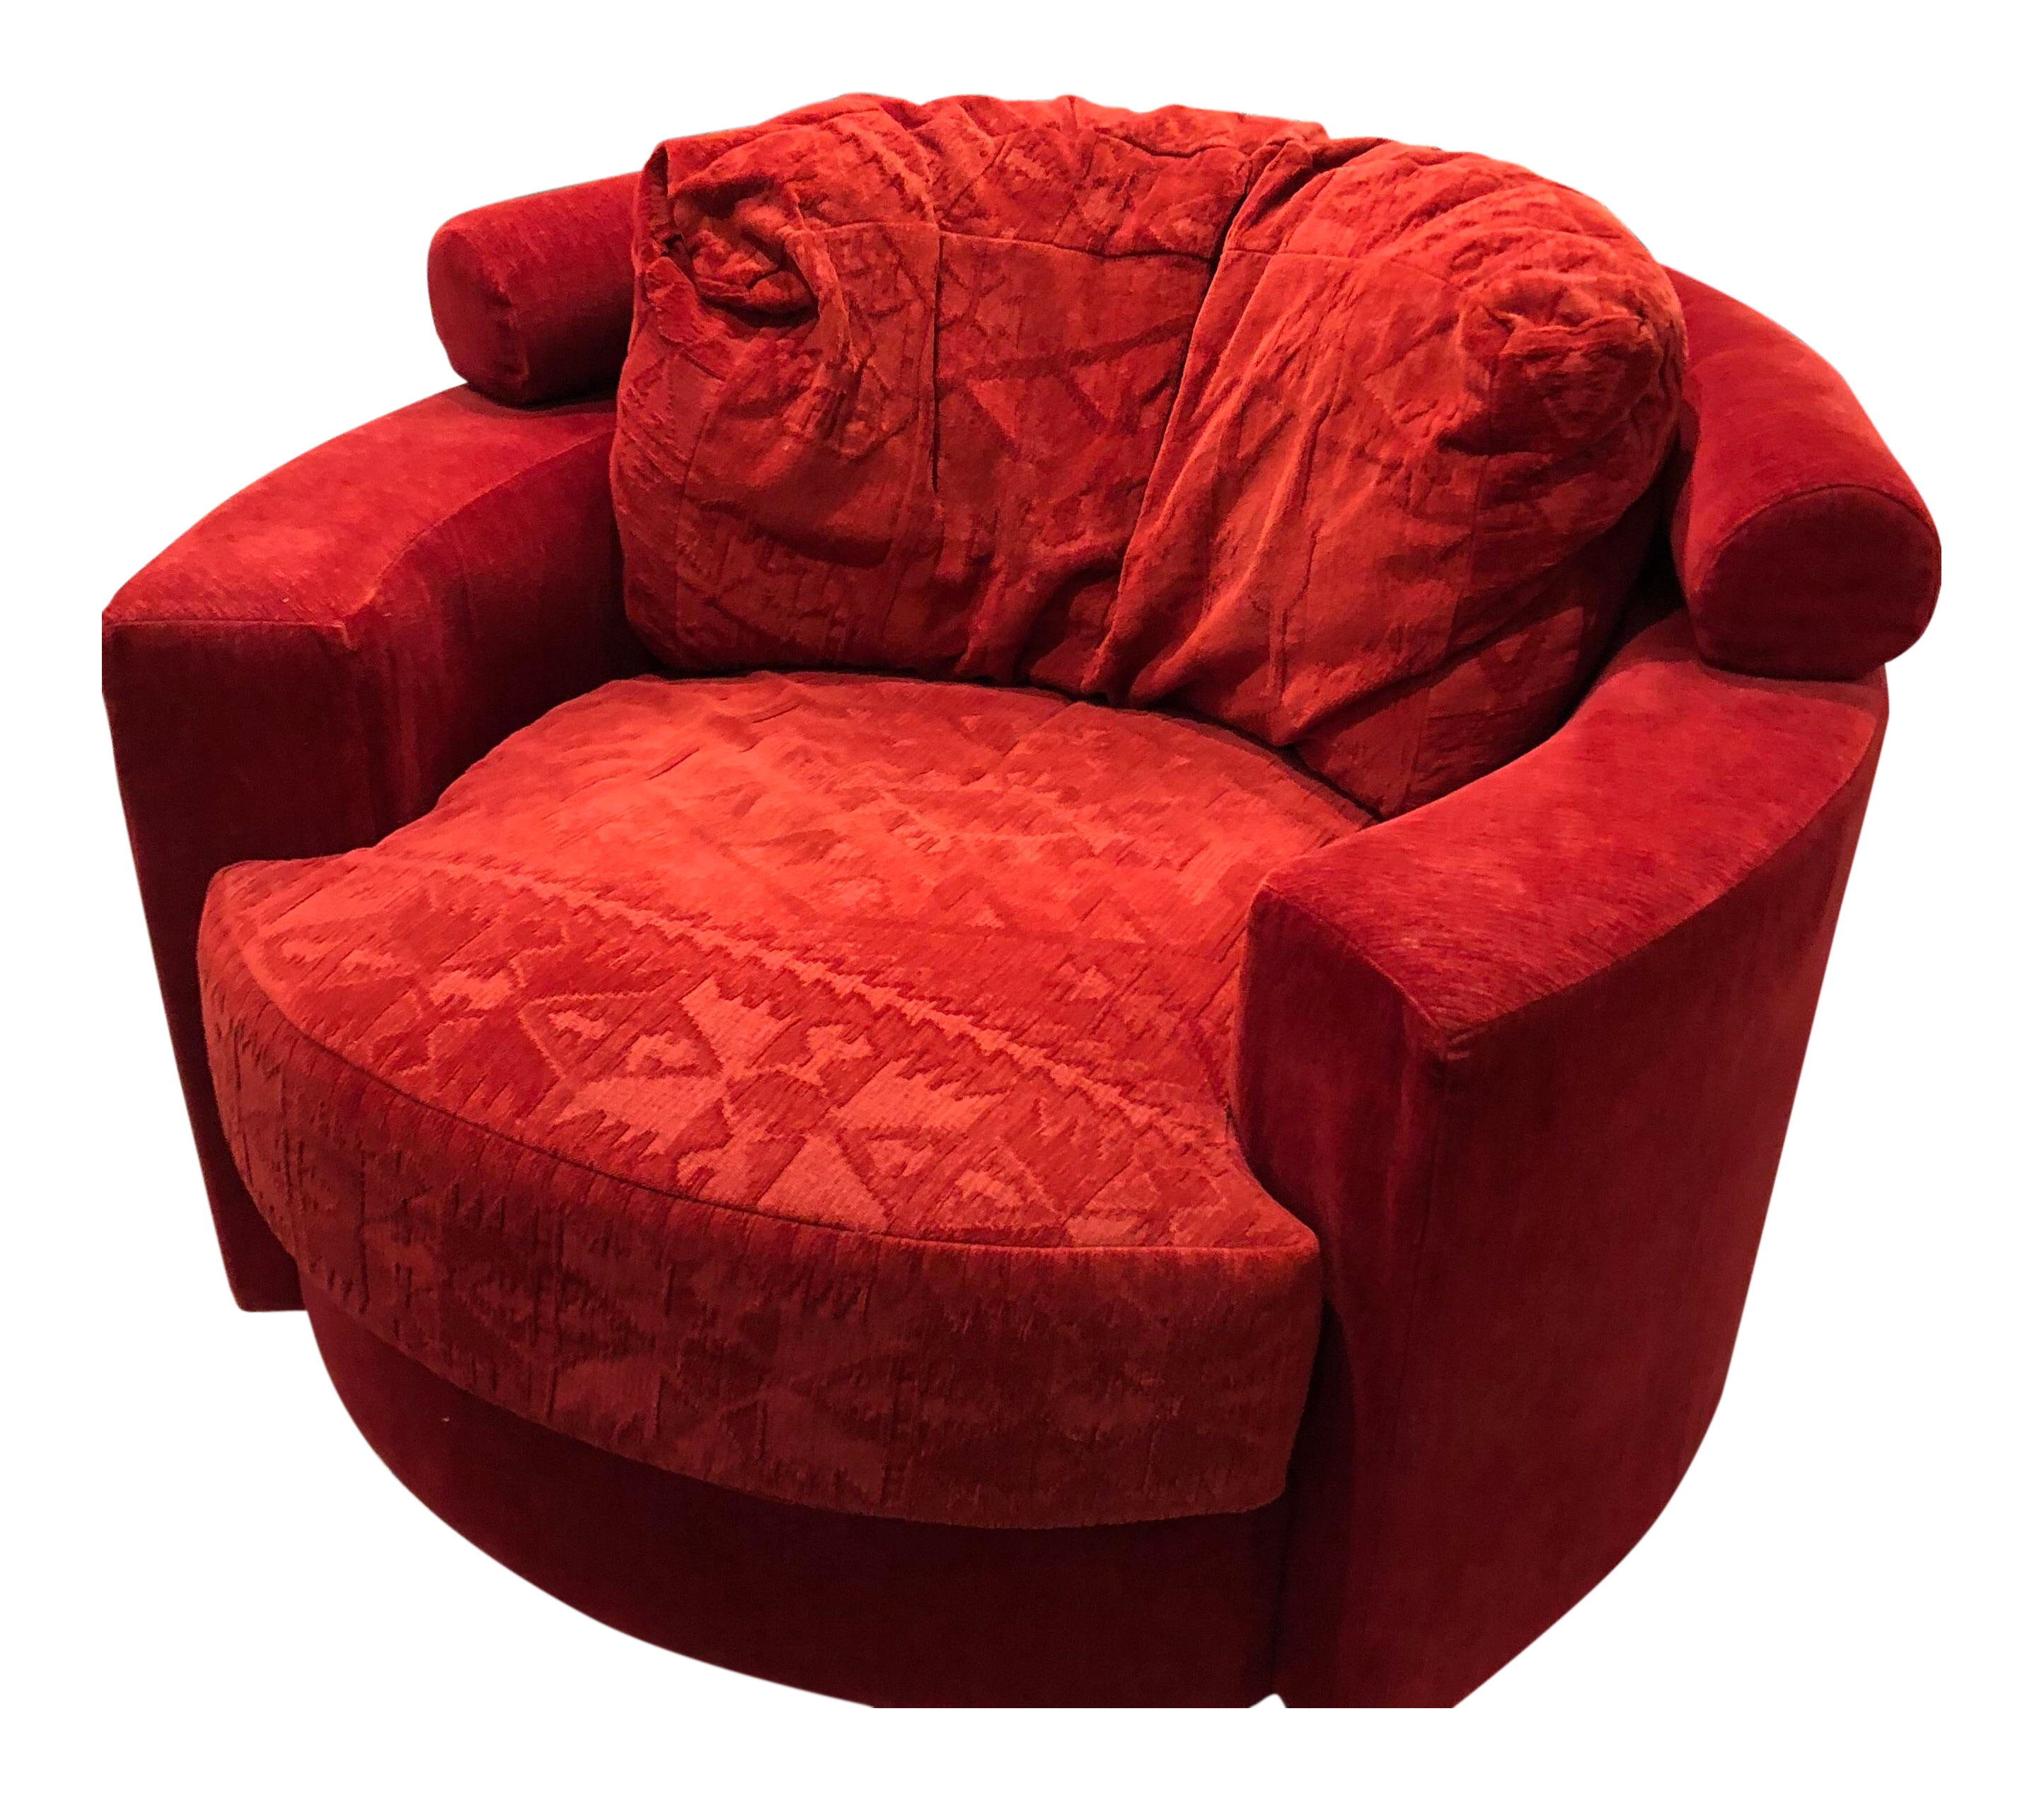 Admirable Vintage Vladimir Kagan For Roche Bobois Red Velvet Swivel Chair Cjindustries Chair Design For Home Cjindustriesco